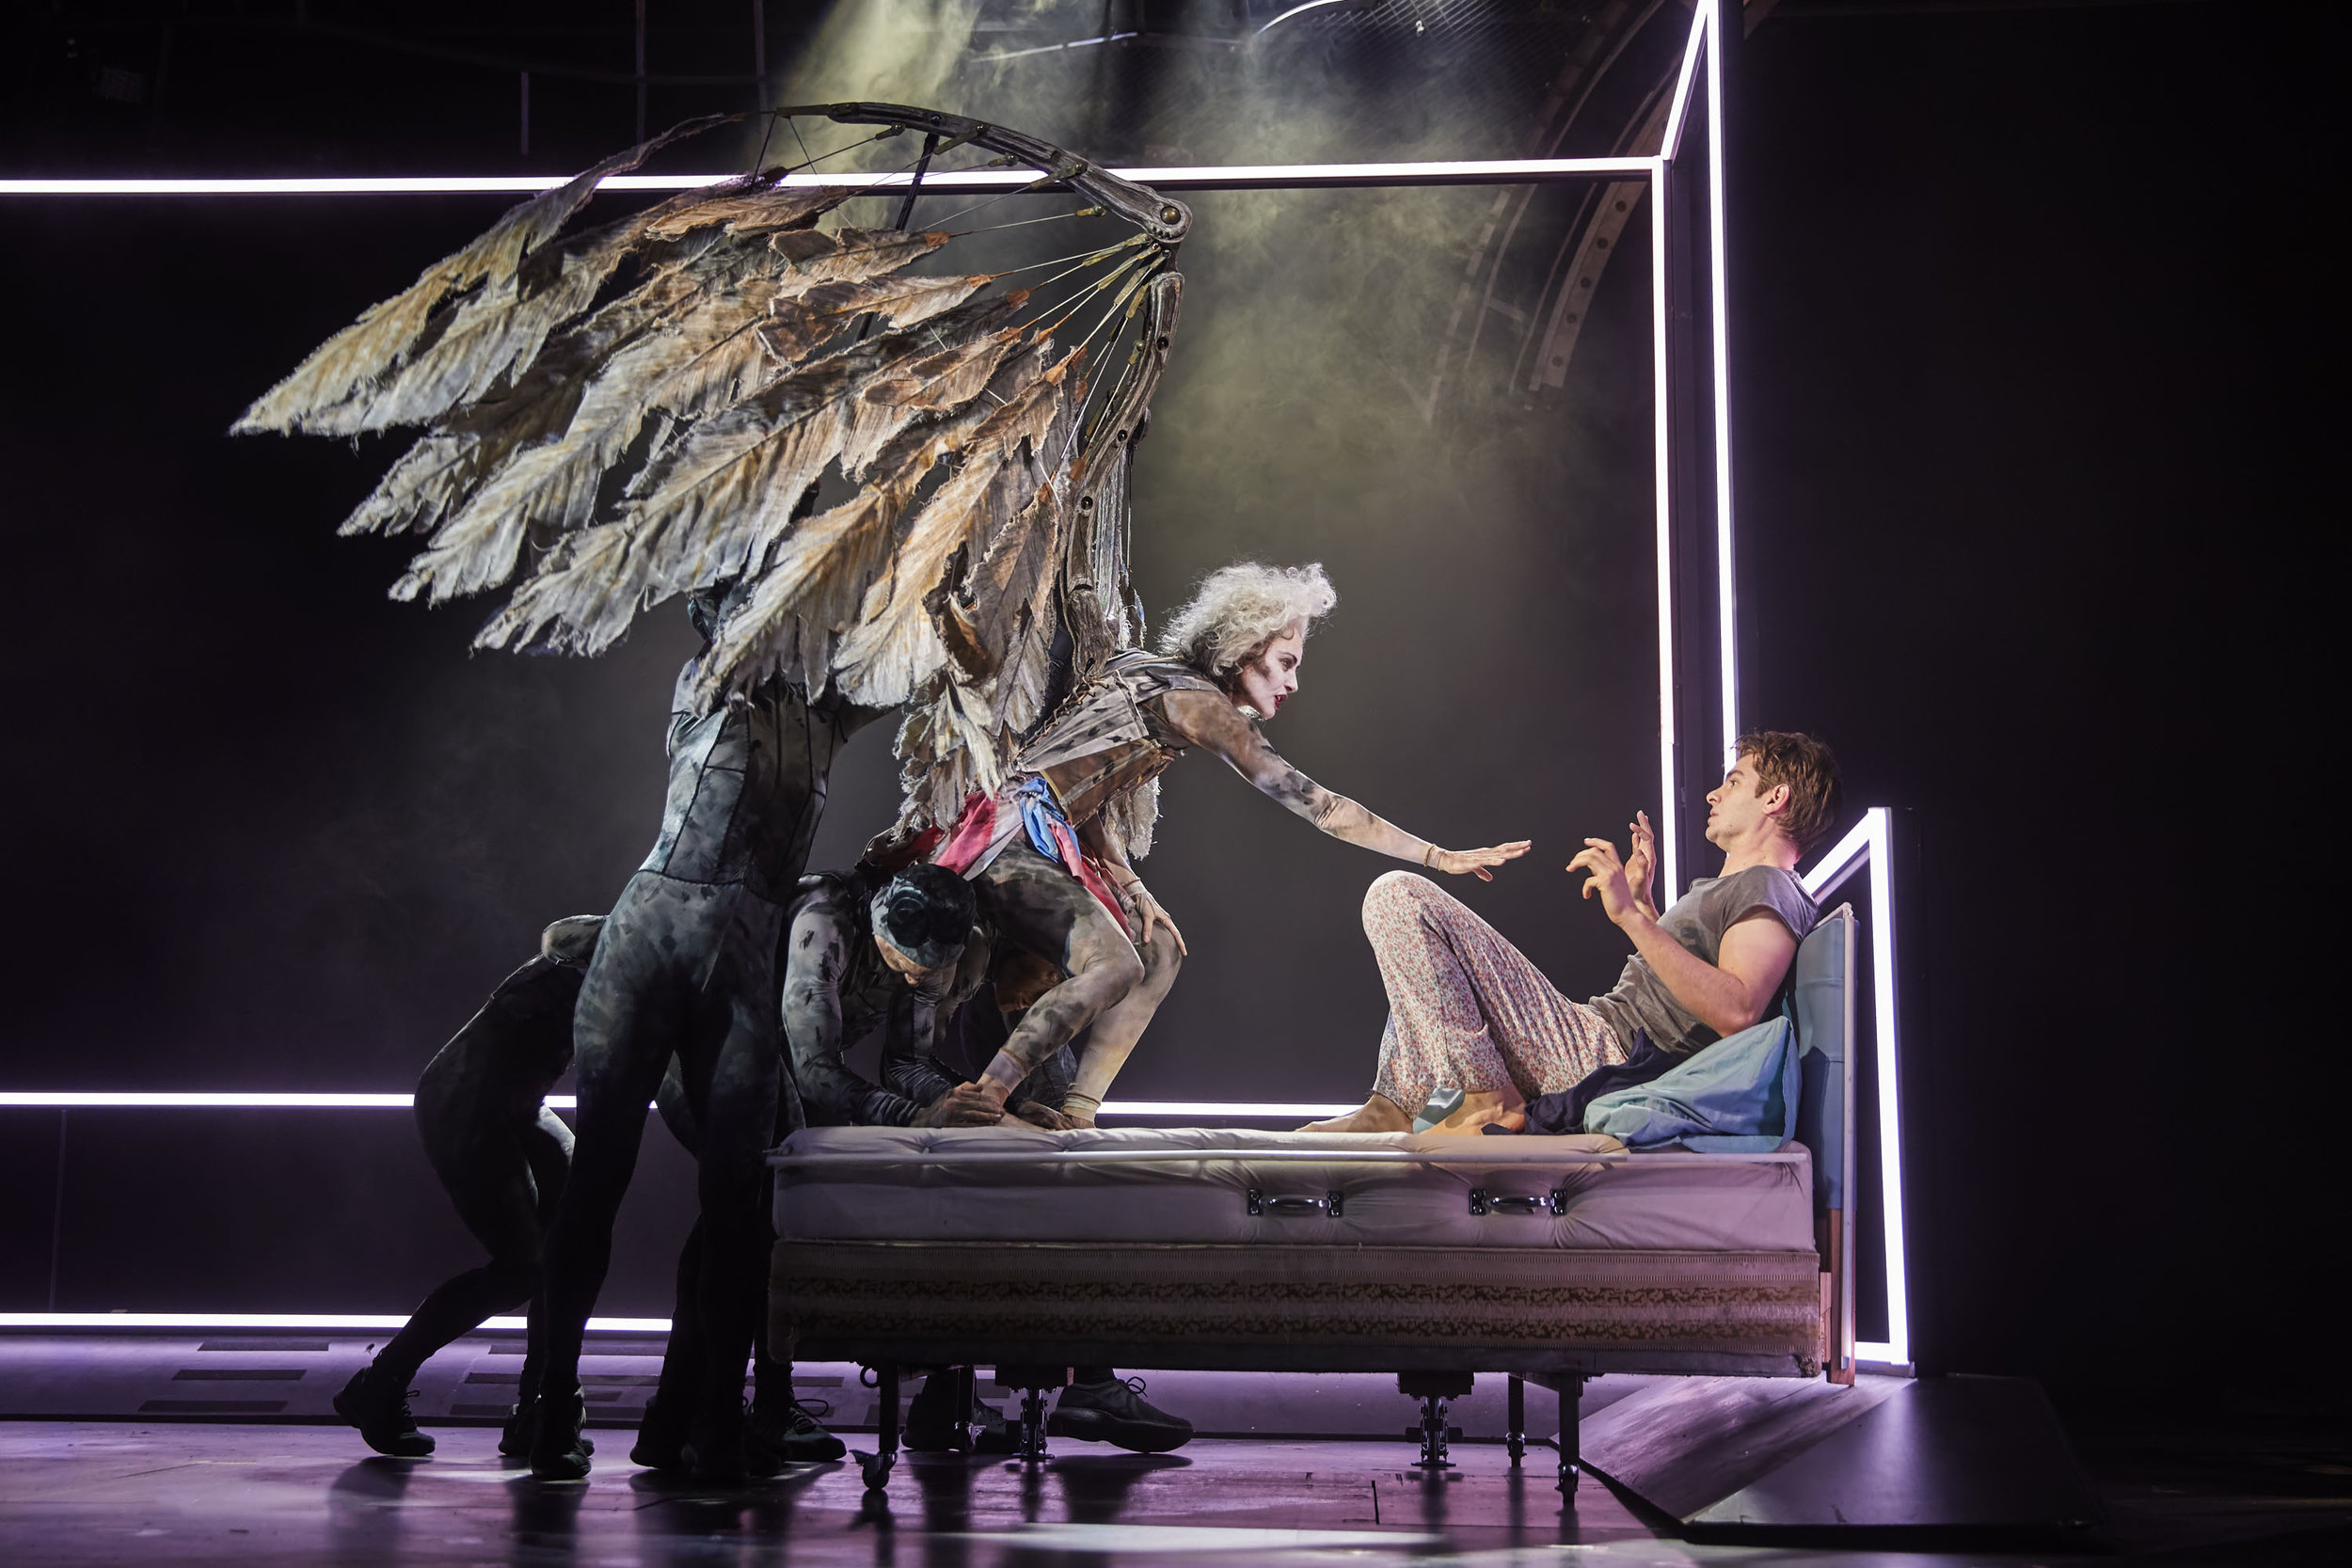 """Edward Pierce, on bringing 'Angels' to America - Edward Pierce answered the call to adapt what he described as a """"massive physical production,"""" […]"""